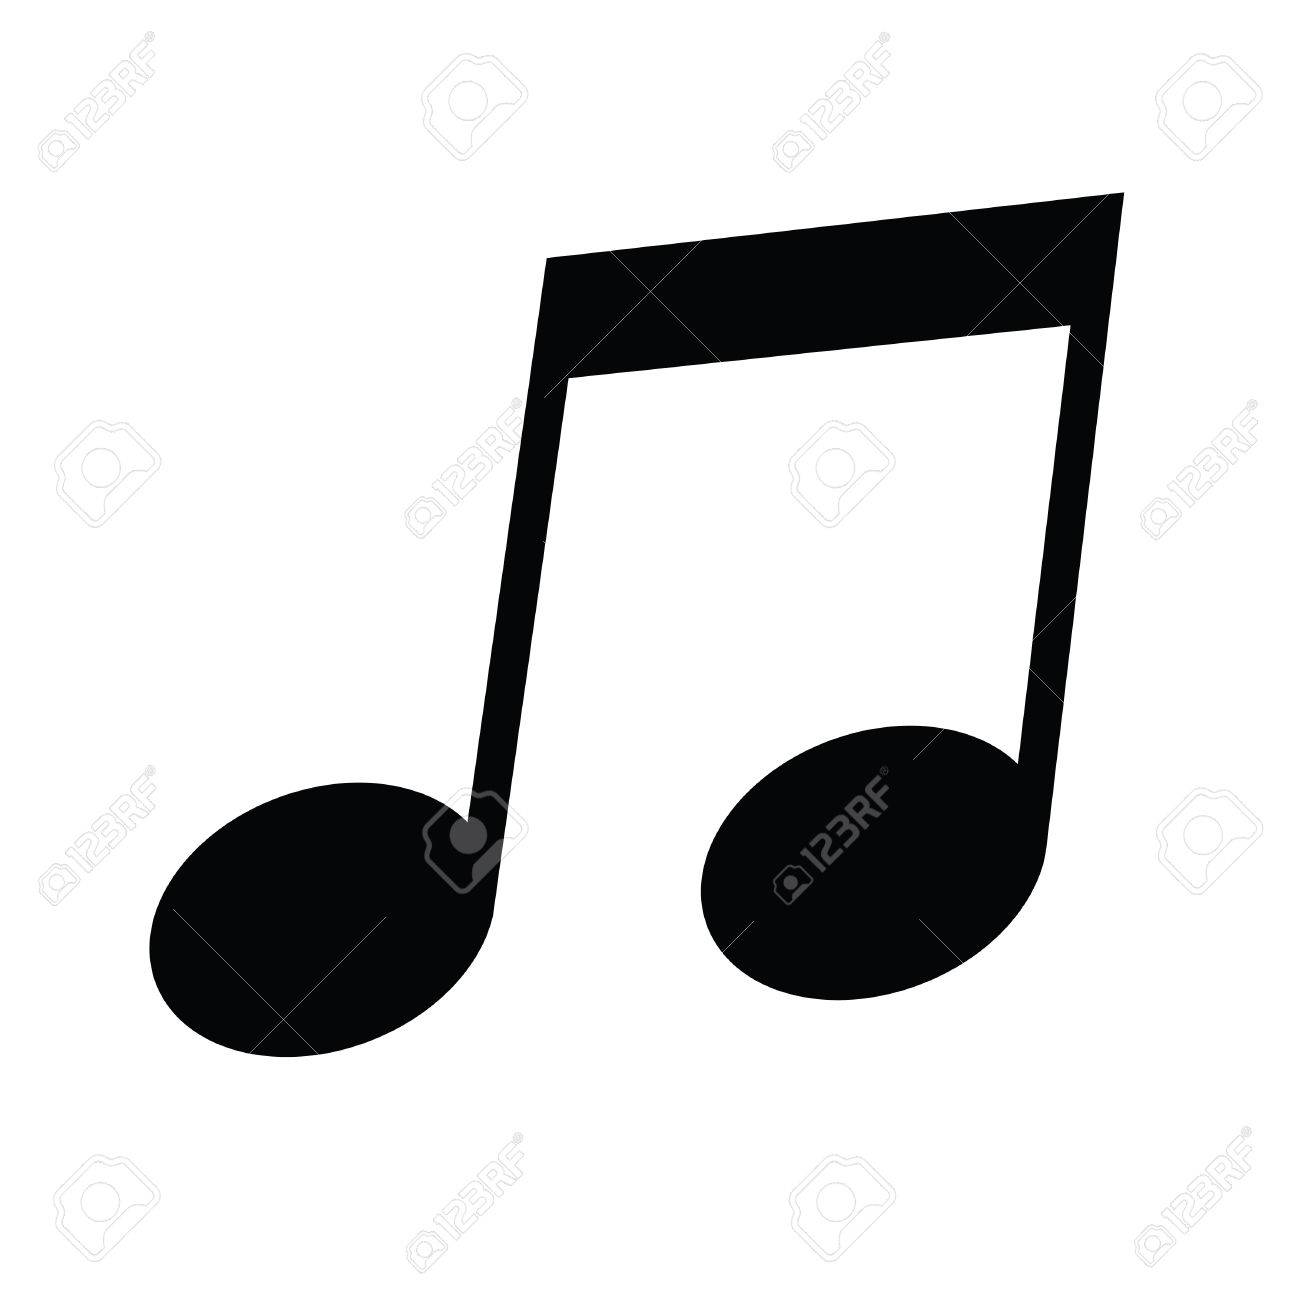 a black and white silhouette of a musical note royalty free